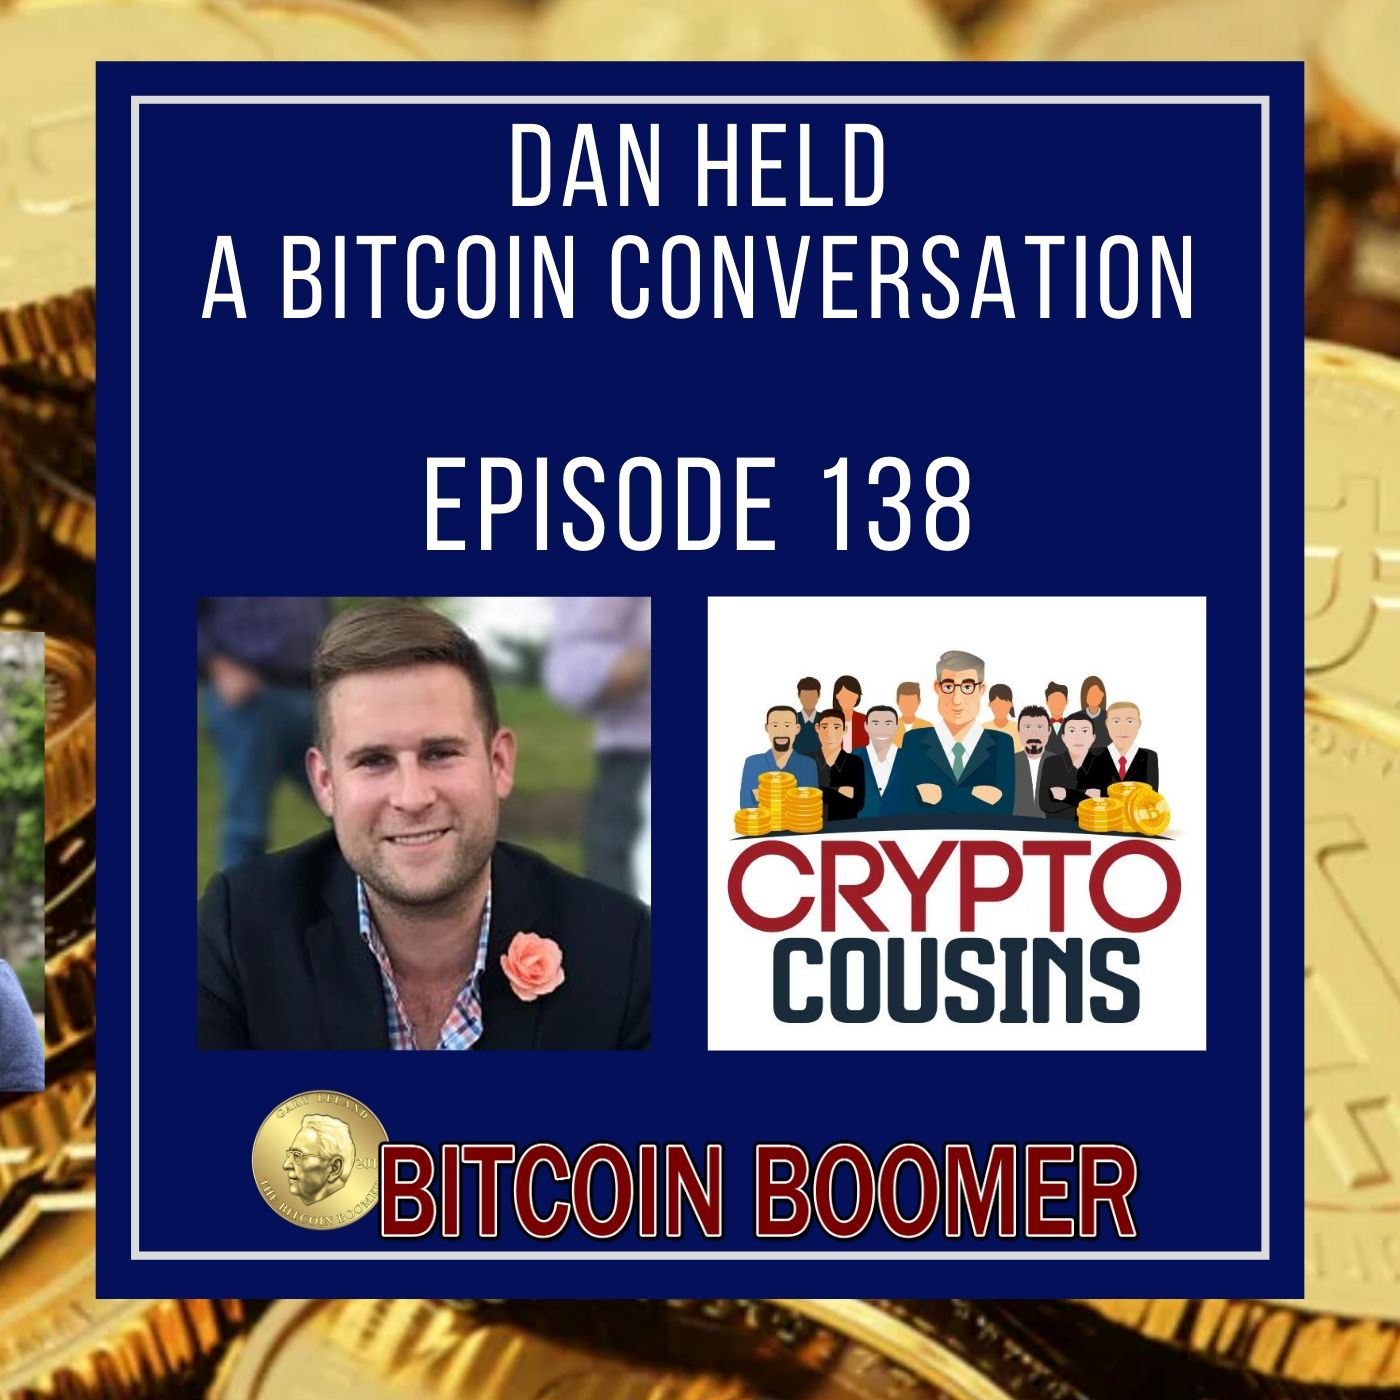 A Bitcoin Conversation - Dan Held